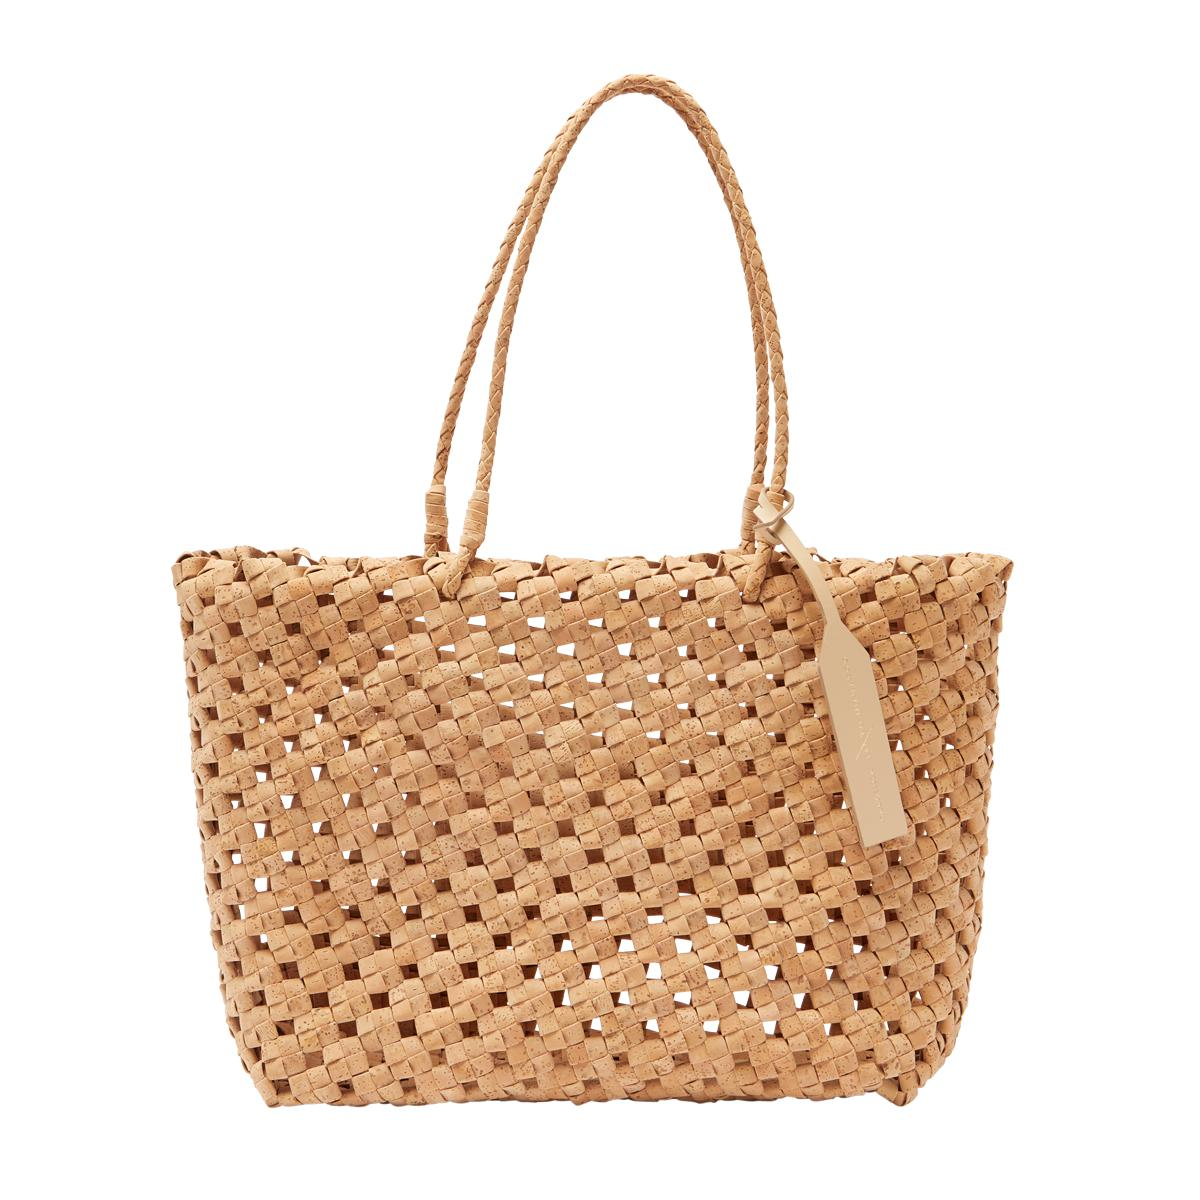 Vegan Cork Knotted Tote